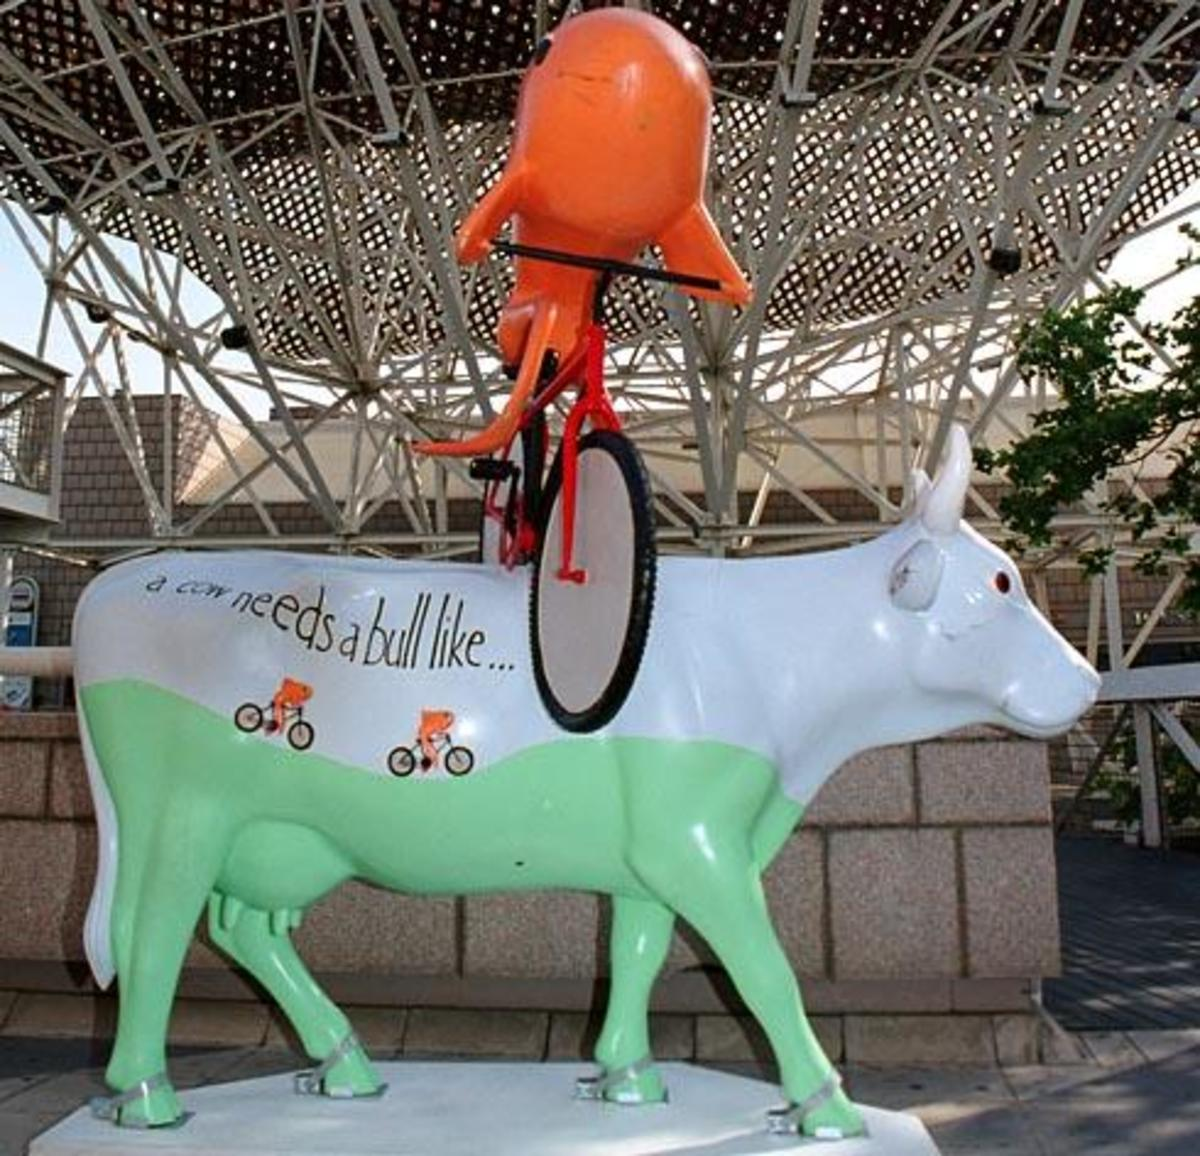 A cow needs a bull like a fish needs a bycicle (Barcelona)